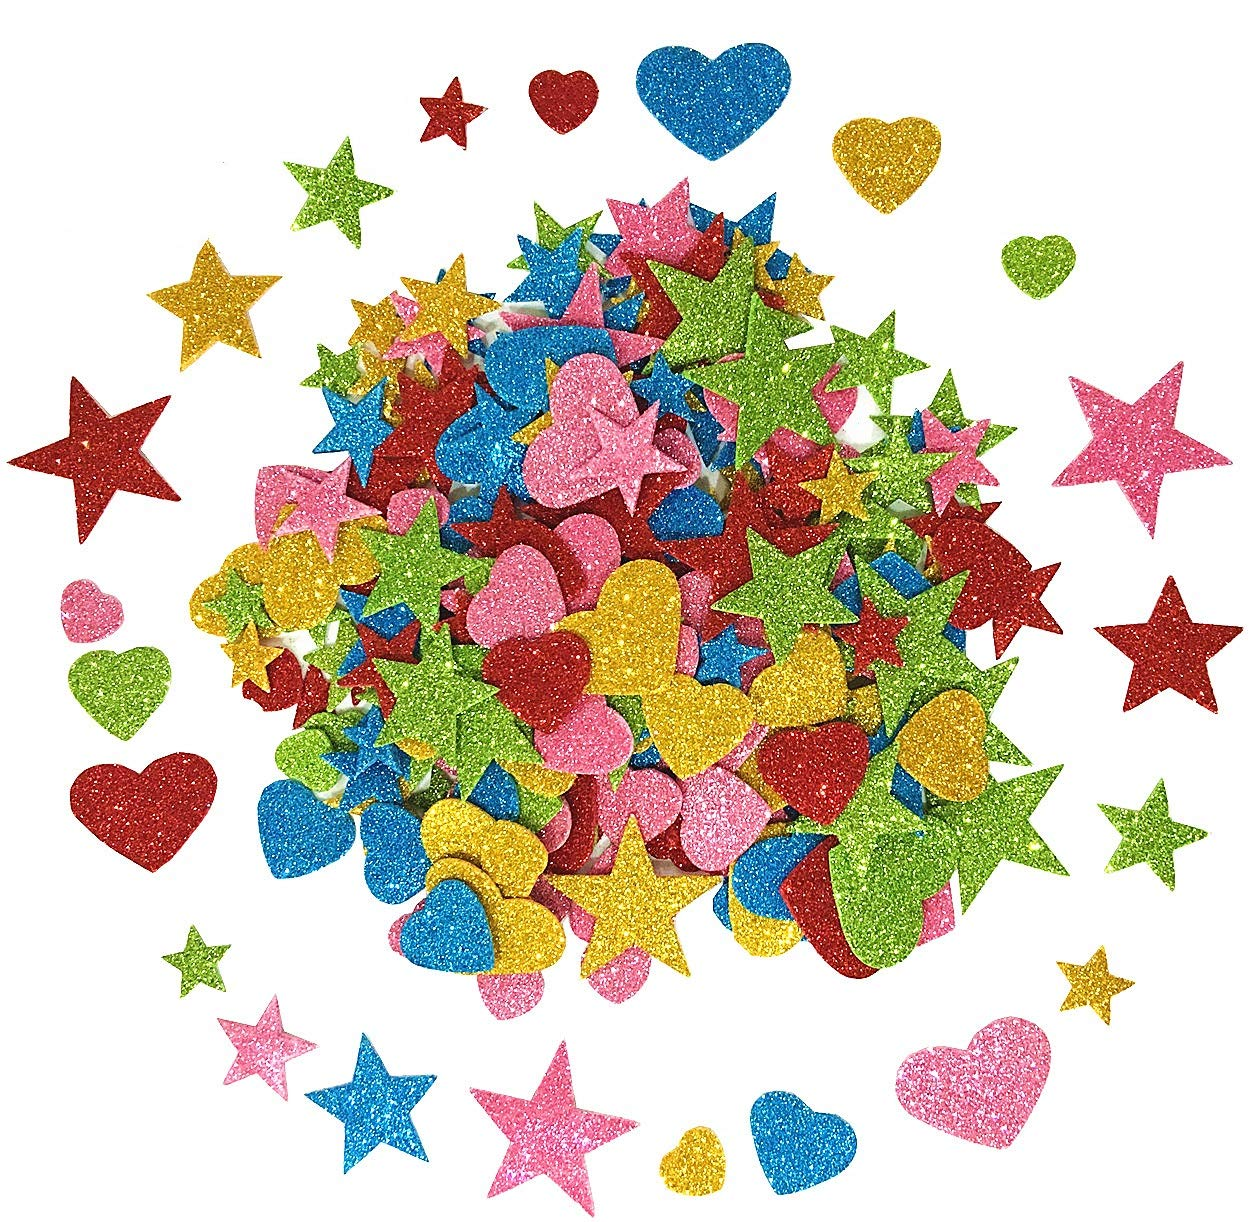 1.9 Ounce 150 pieces Foam Glitter Stickers, Star and Mini Heart Shapes Deryunny